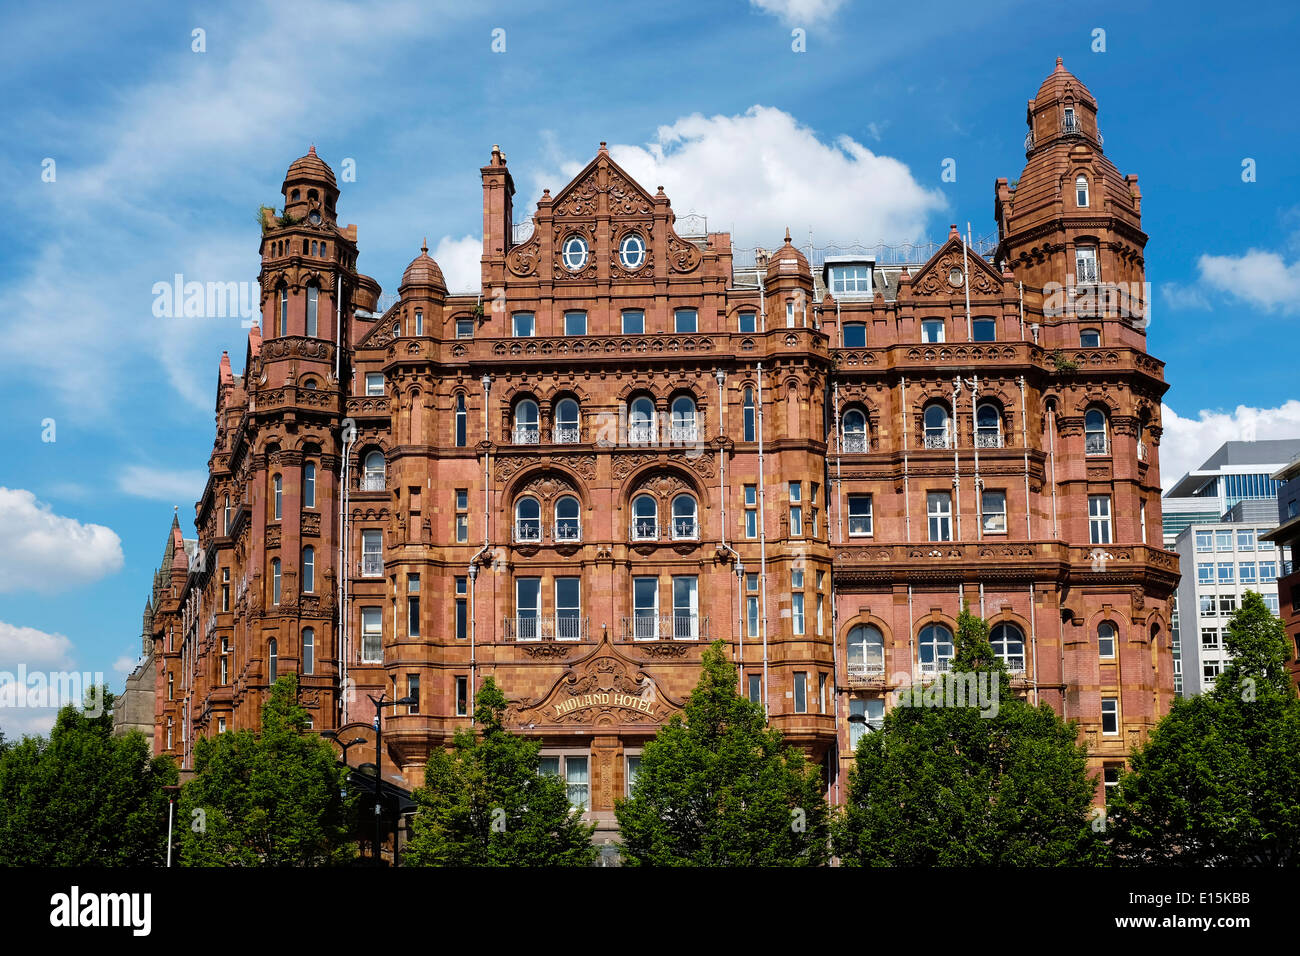 The Midland Hotel in Manchester city centre UK - Stock Image